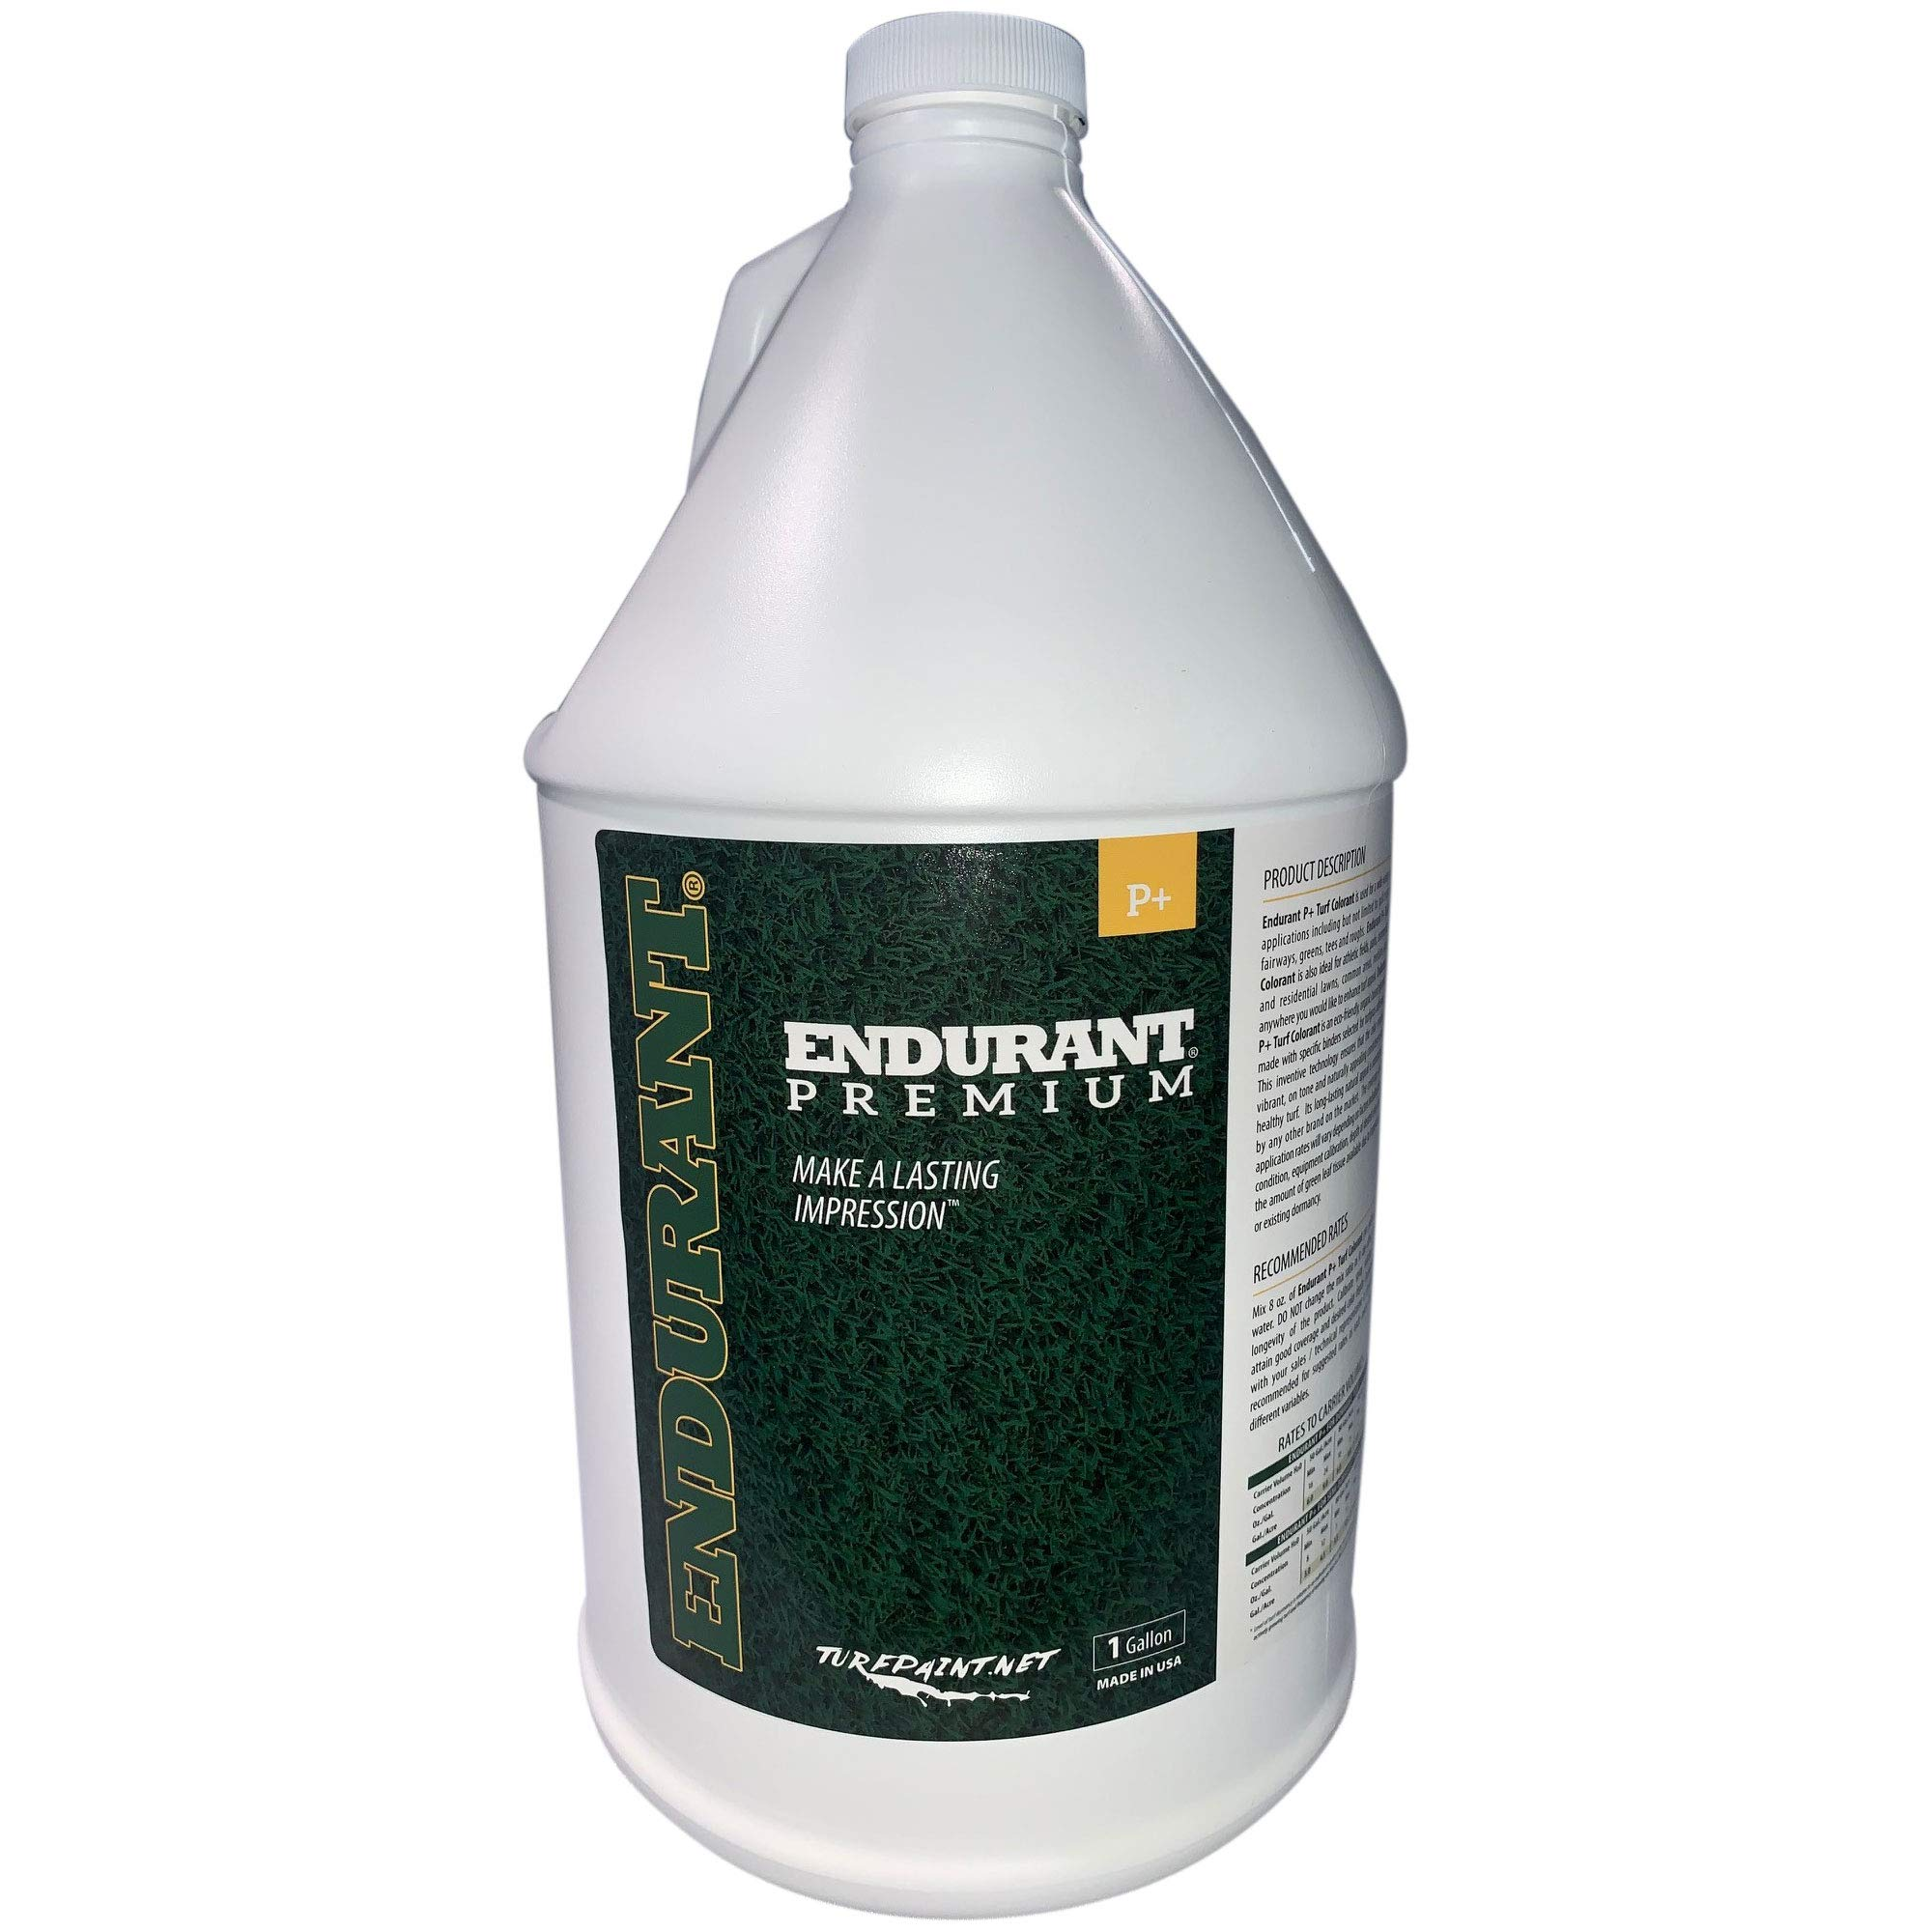 Concentrated Turf and Grass Colorant - 1 Gallon Jug Revitalizes Approximately 10,000 Sq. Ft of Dormant, Drought-Stricken or Patchy Lawn (Premium) by Endurant